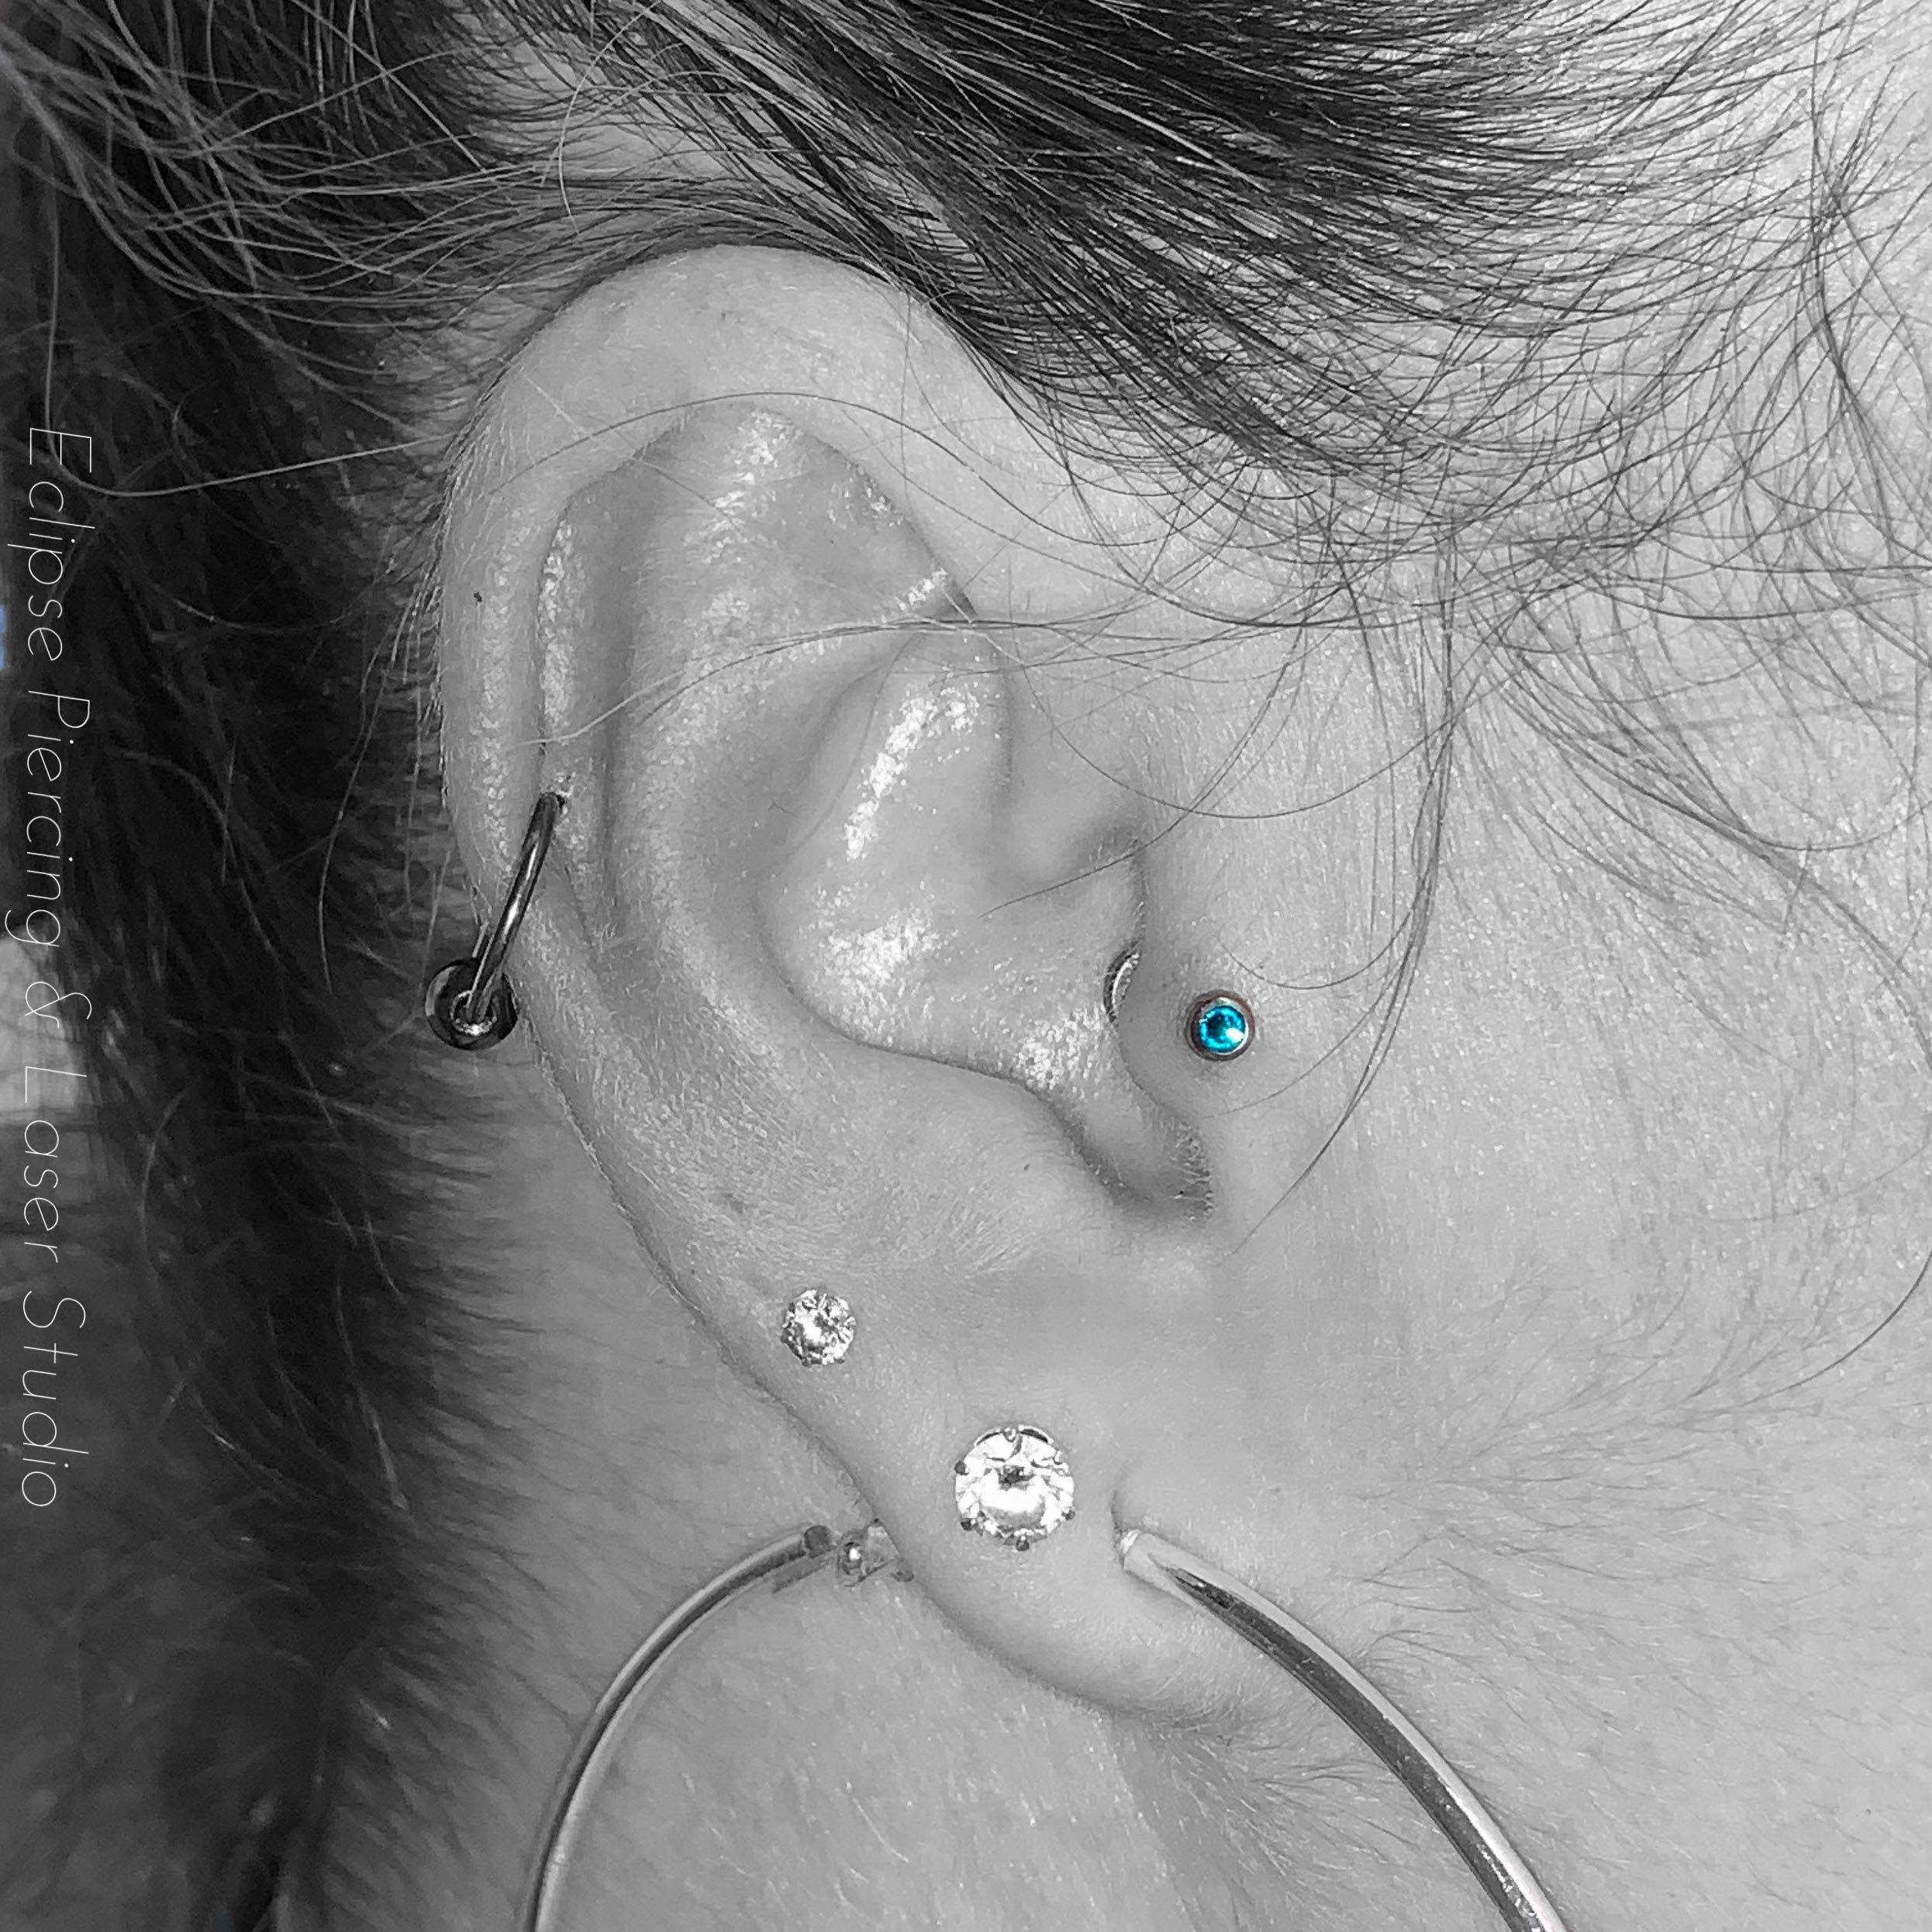 Helix piercing with a ball closure ring and a tragus piercing with a blue zircon crystal gem